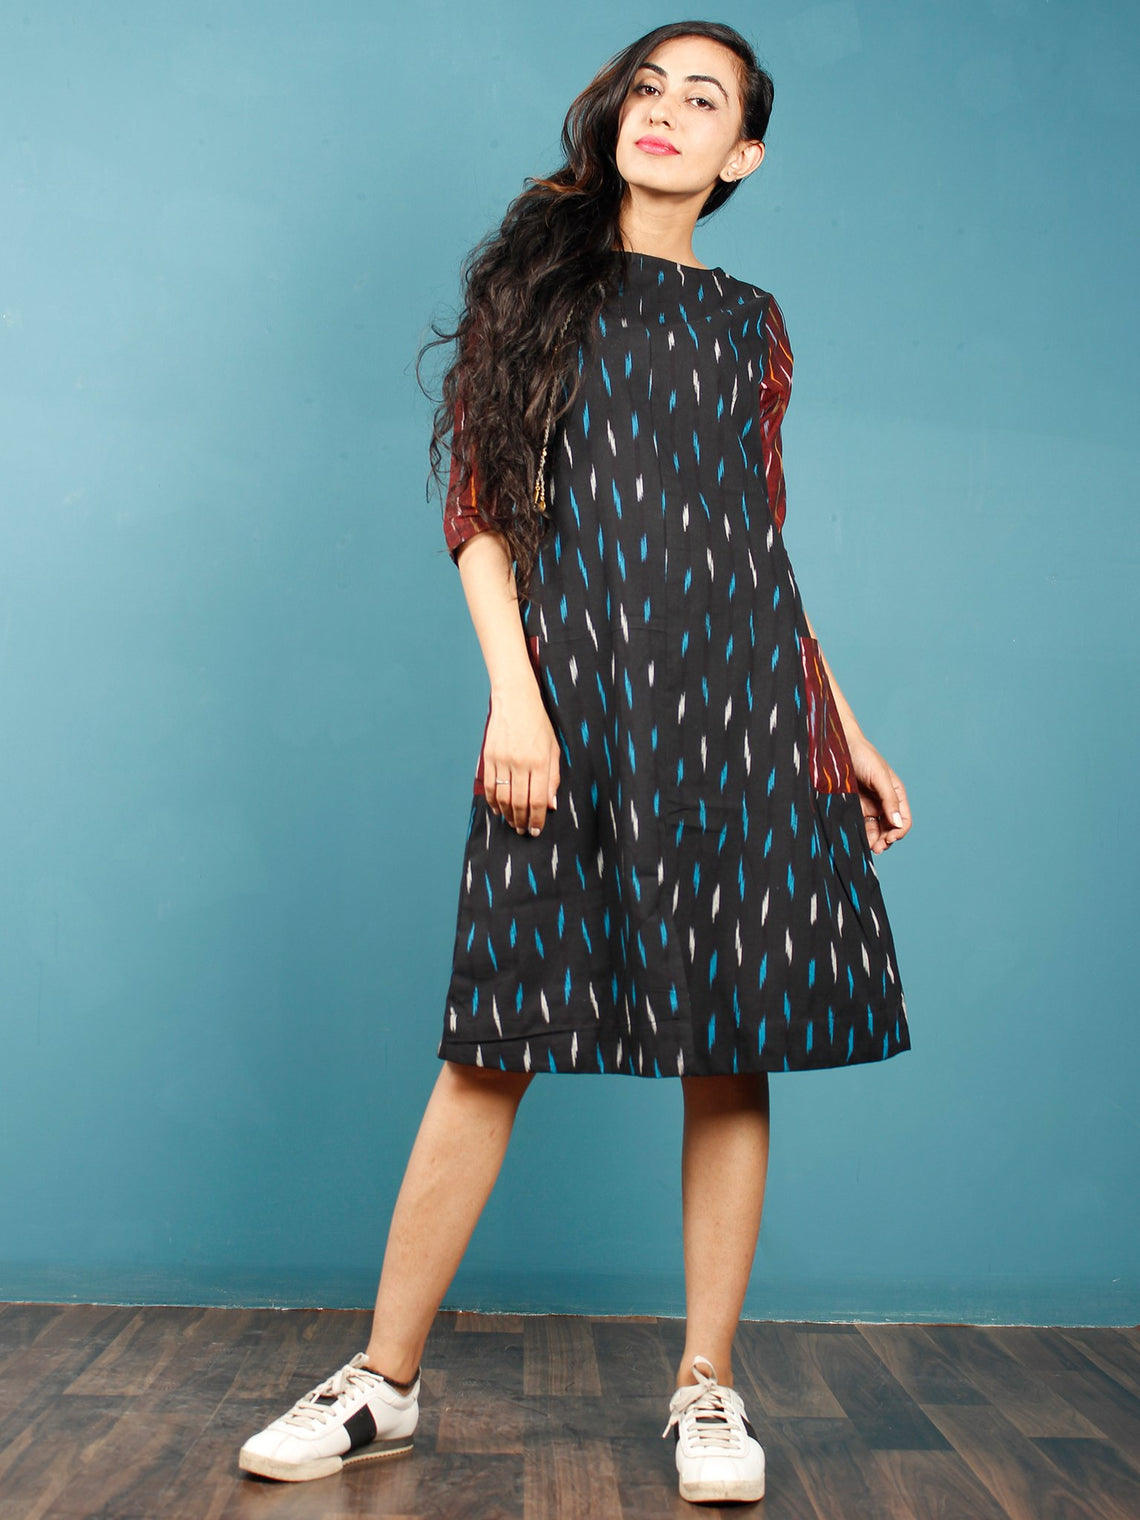 7bd346d458a5 Black Turquoise Maroon White Ikat Handwoven Tunic Dress With Side Pockets  And Back Slit - D66F739 ...